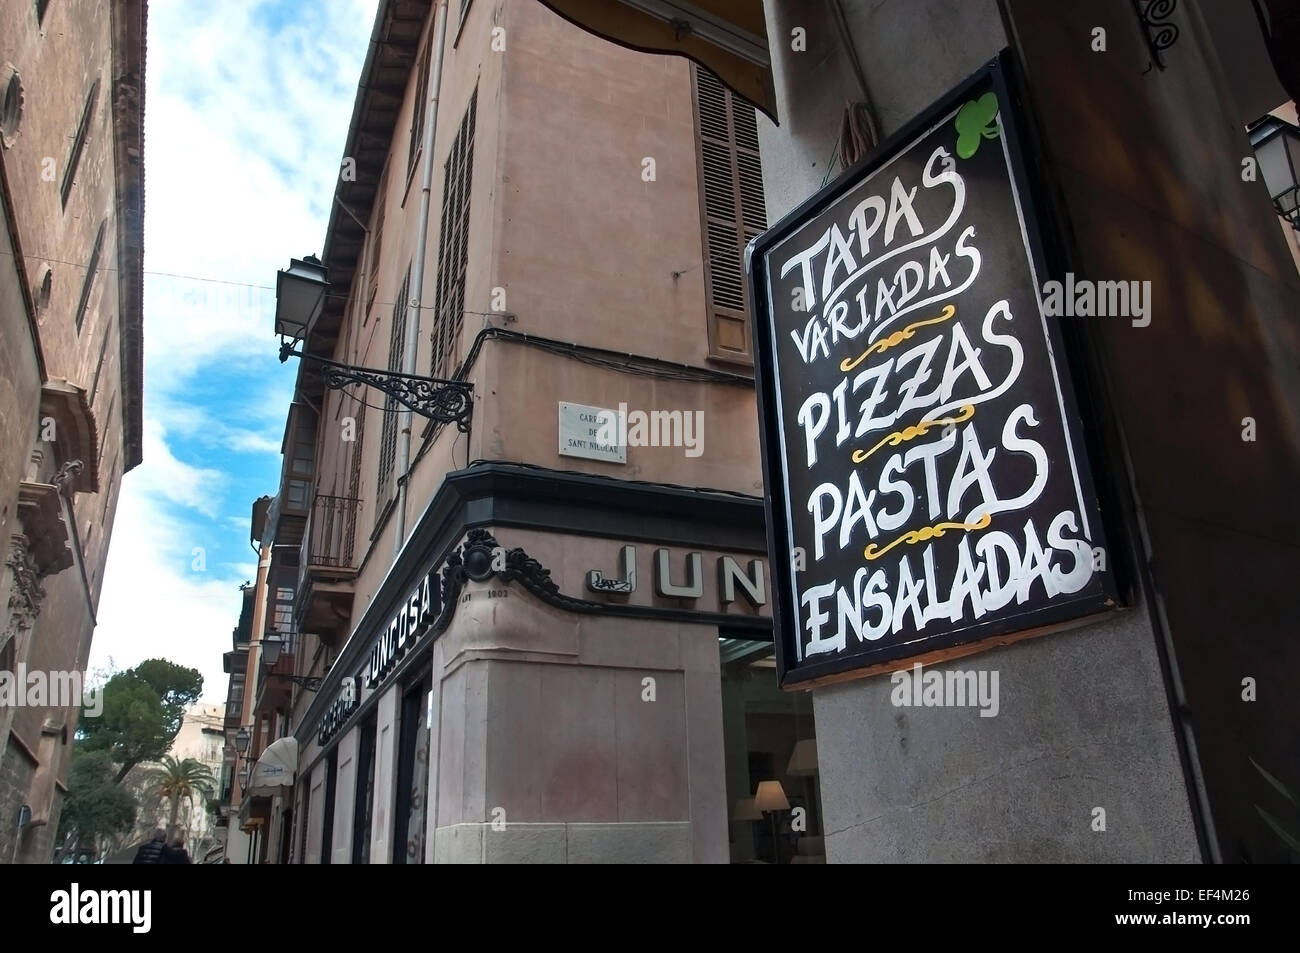 PALMA DE MALLORCA, SPAIN - FEBRUARY 8, 2013: City view and an advertising text on chalkboard in a tapas bar. - Stock Image